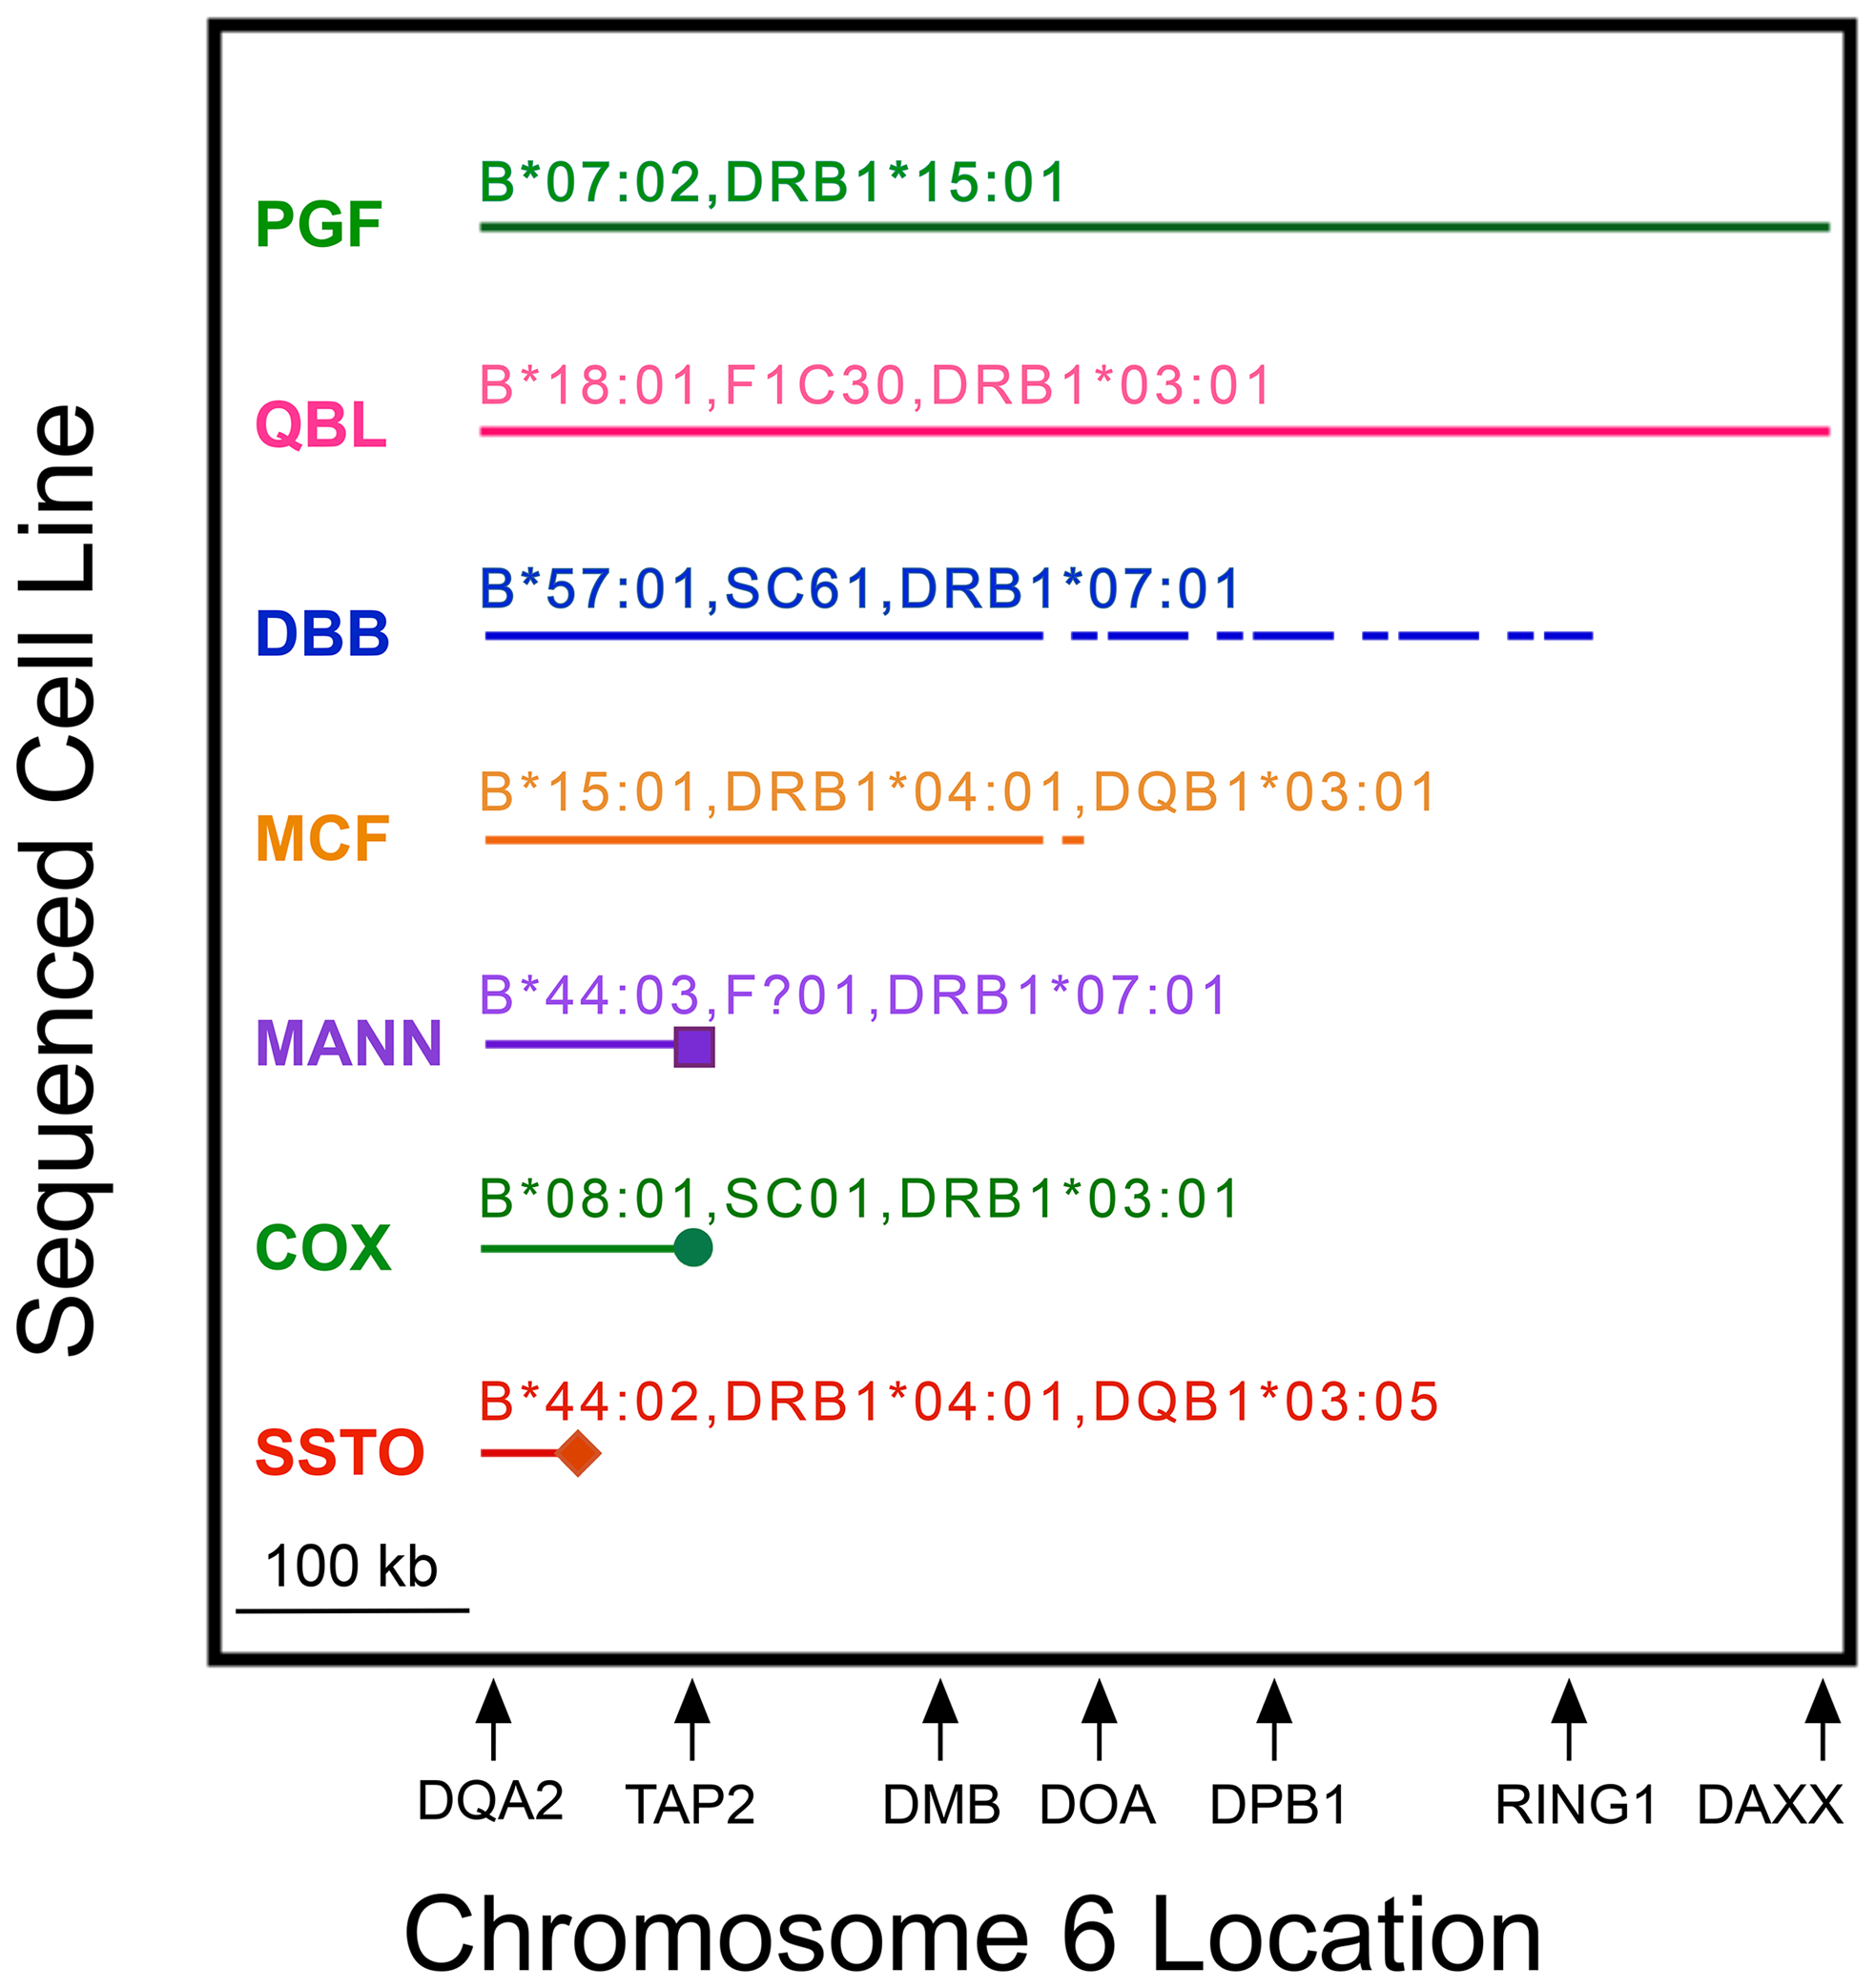 MHP sequences represent CEHs to variable extents in MHC class II from <i>HLA-DQA2</i> to <i>DAXX</i>.